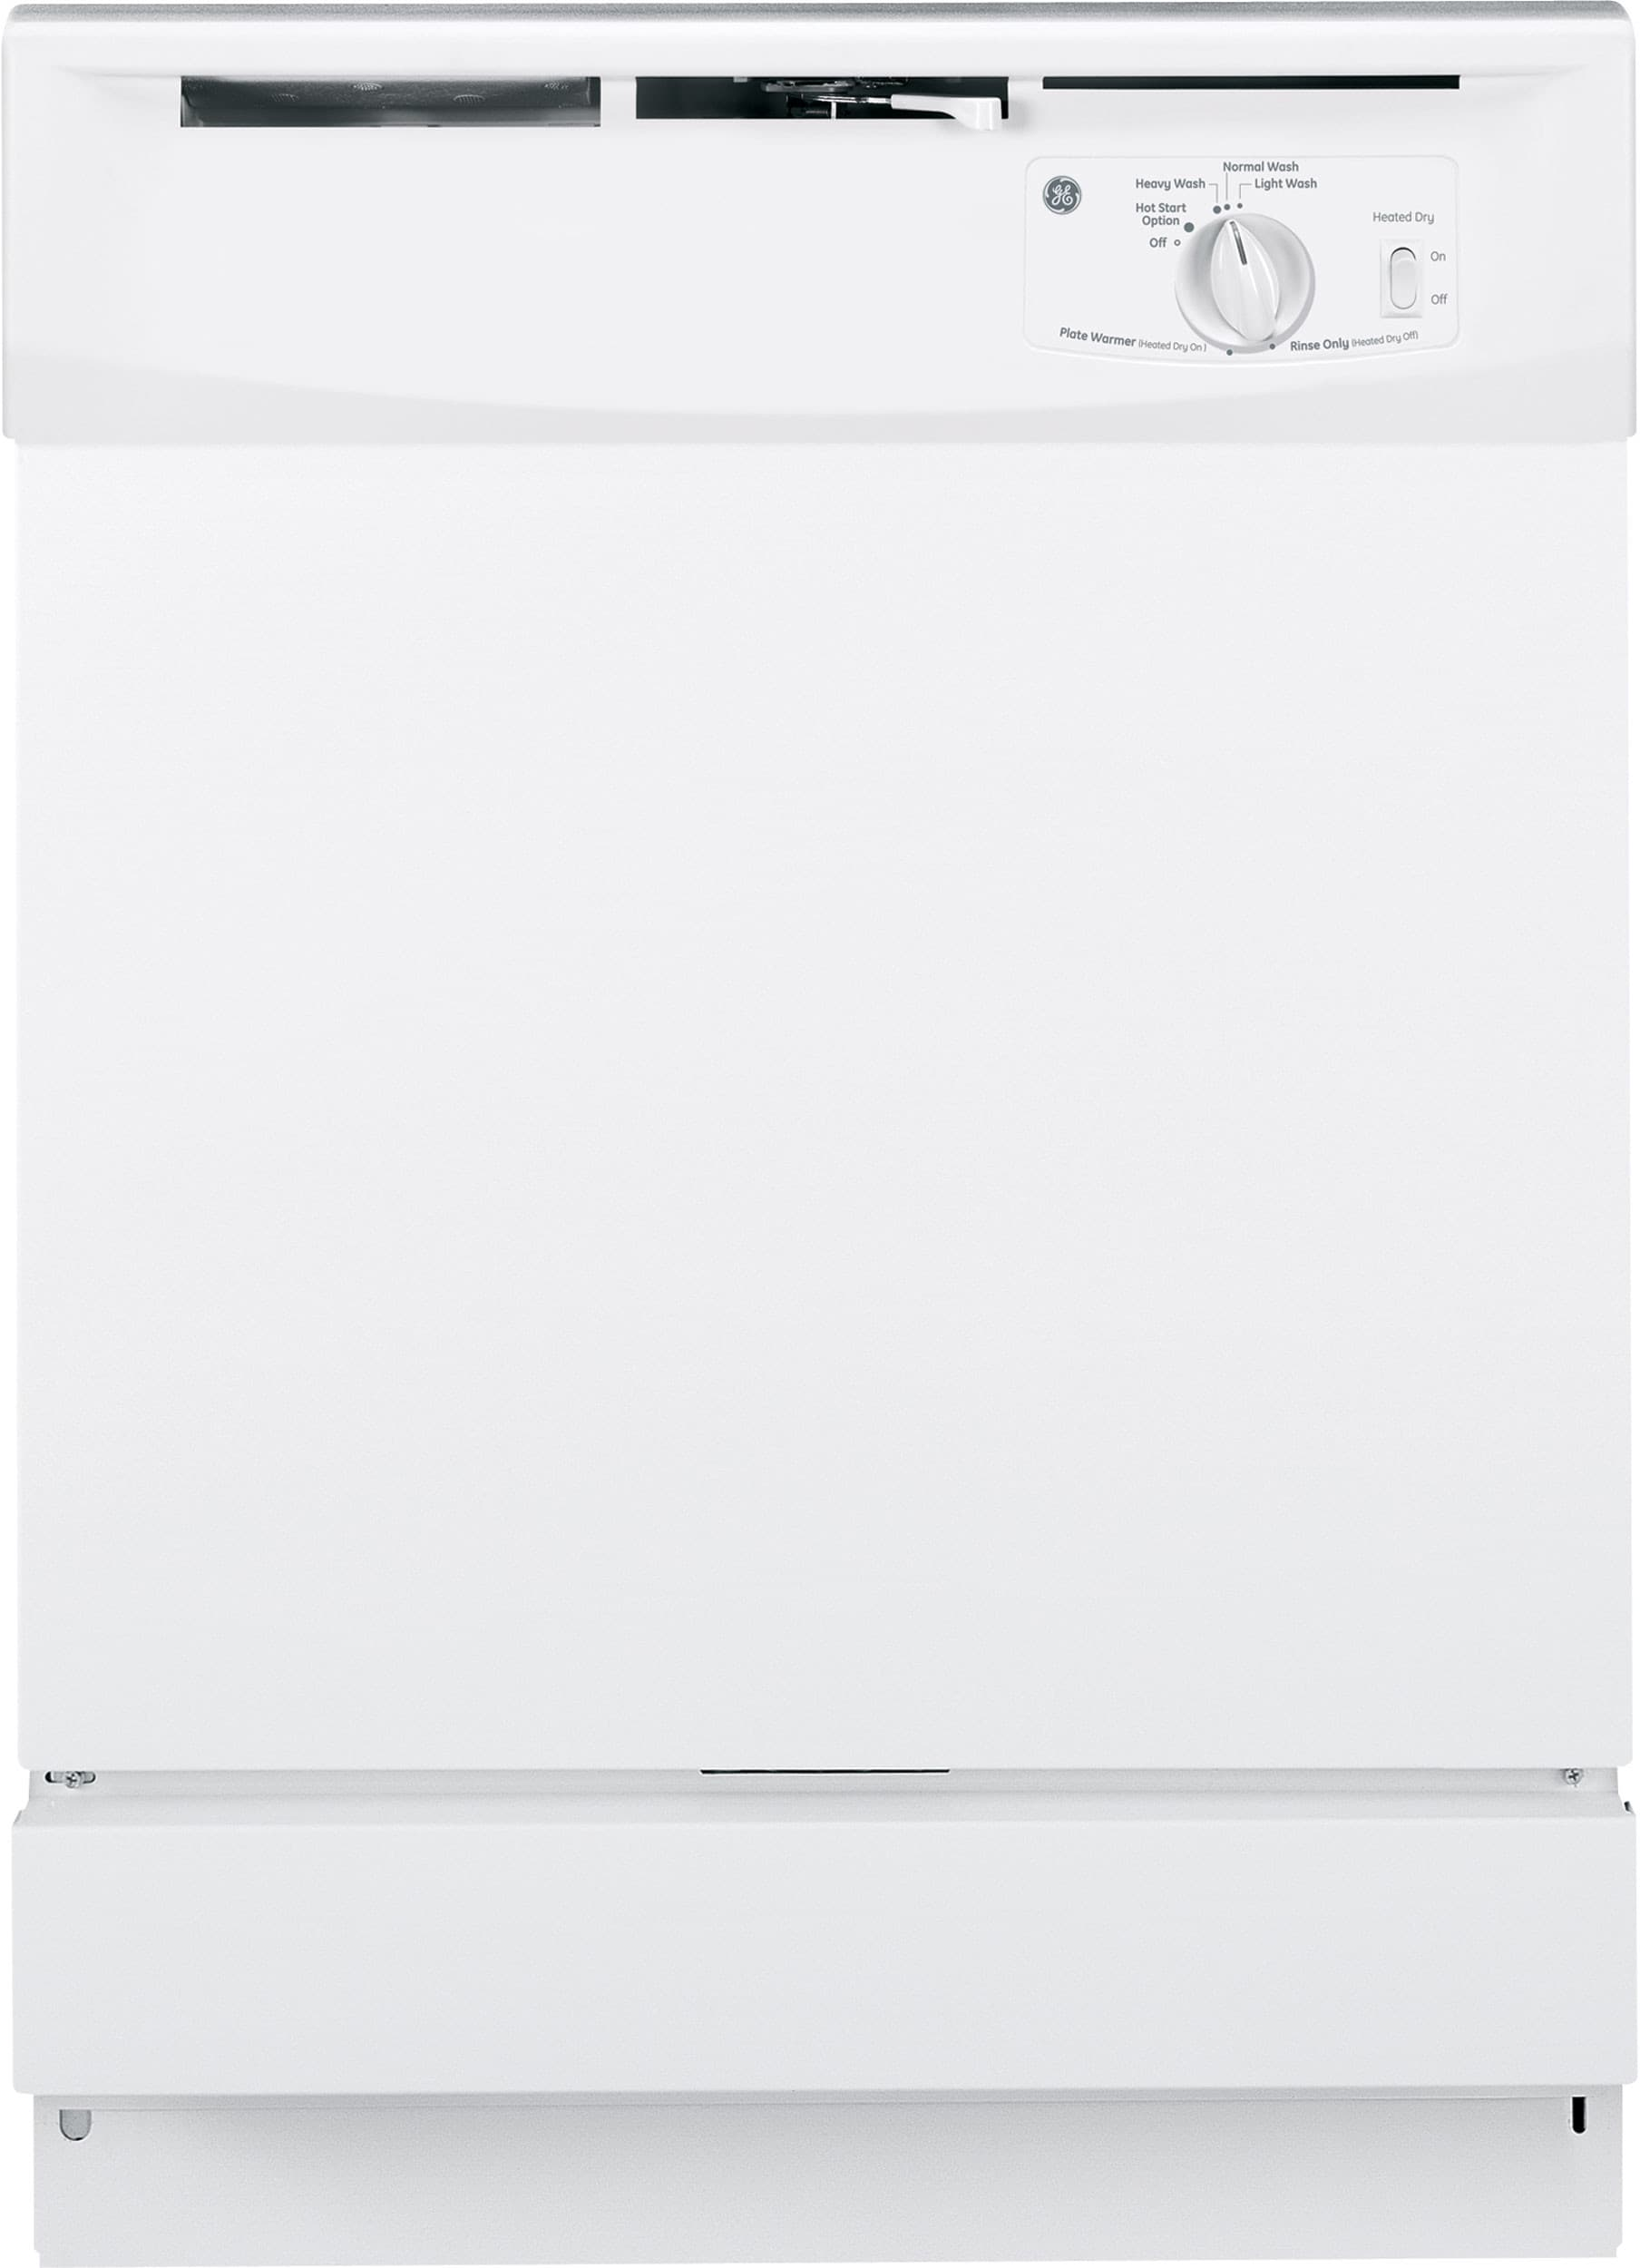 countertop fully appliance appliances countertops requesttype dispatcher magic ge monogram name image dishwasher specs chef product gea integrated